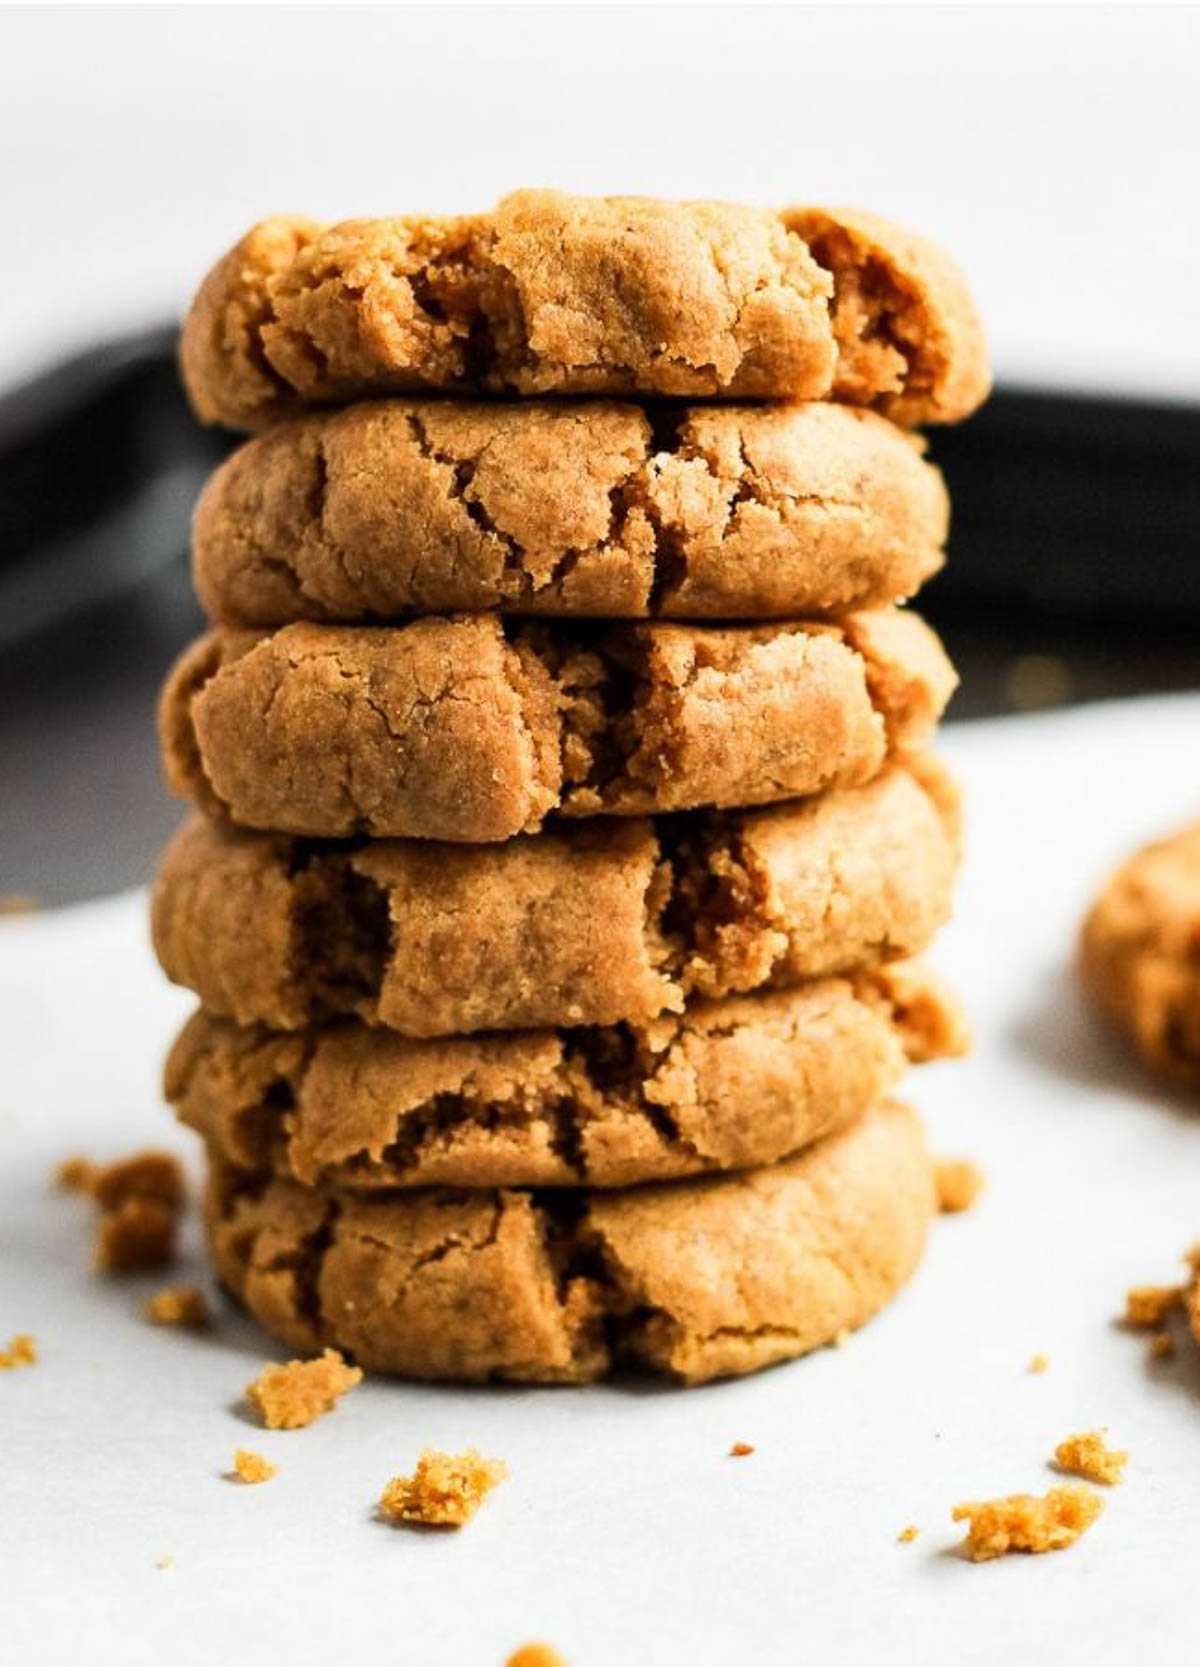 Stack of almond flour peanut butter cookies.